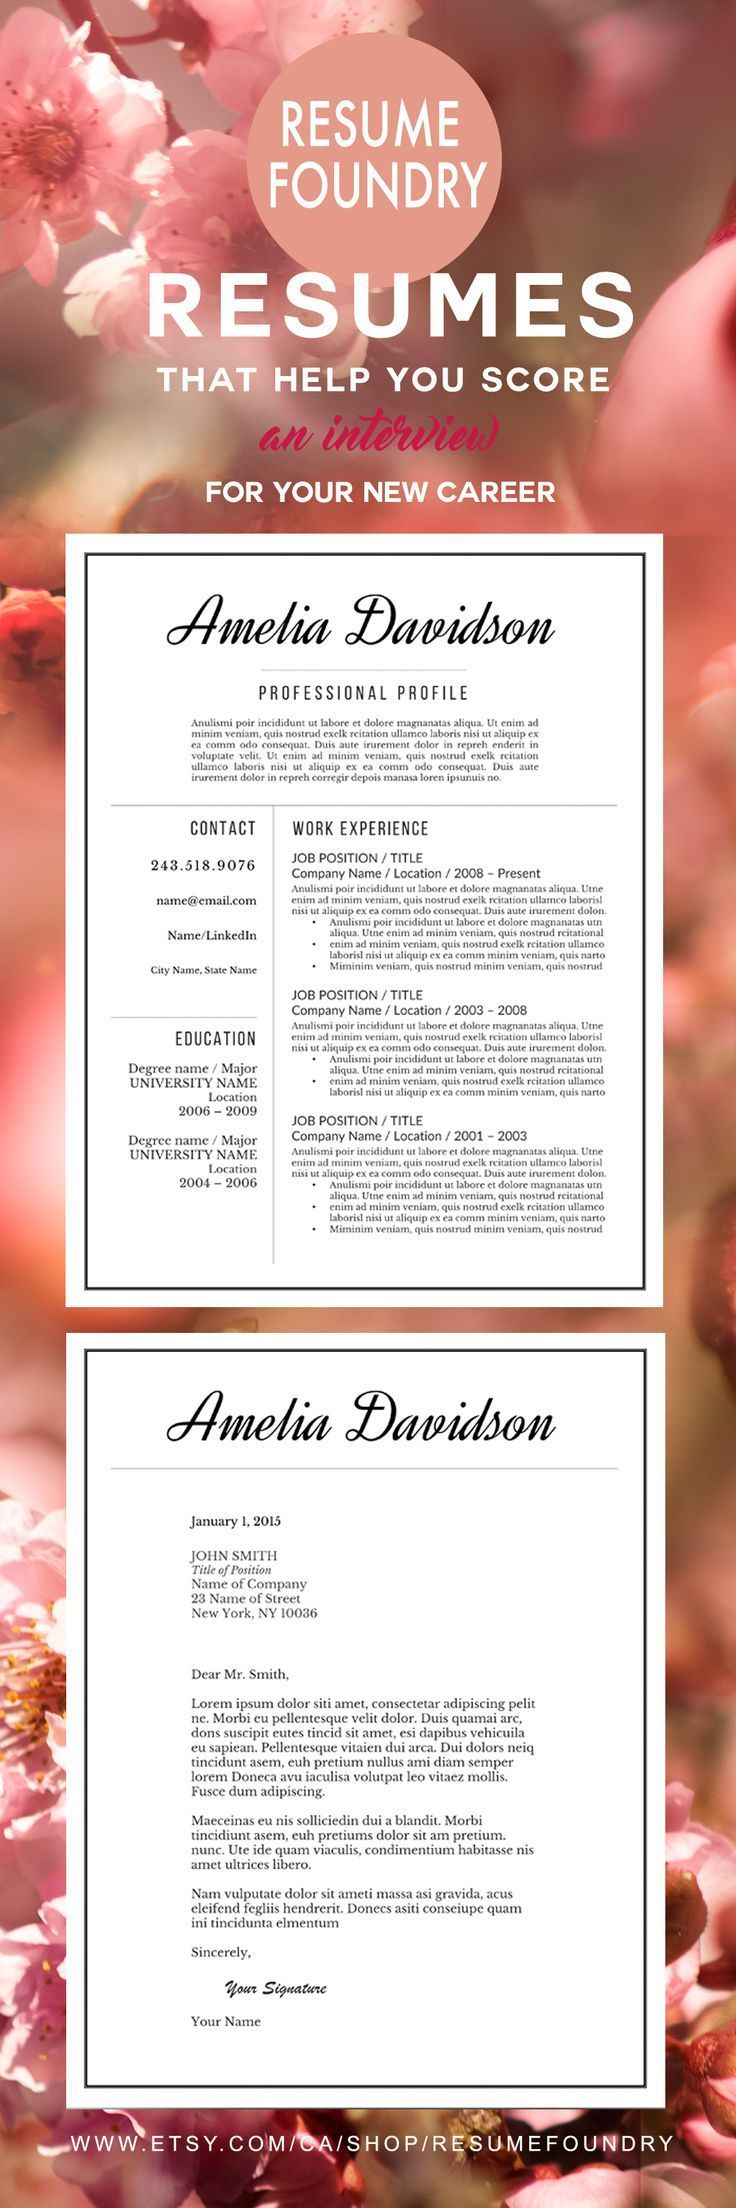 Best Stylish Resume Templates Cv Template Images